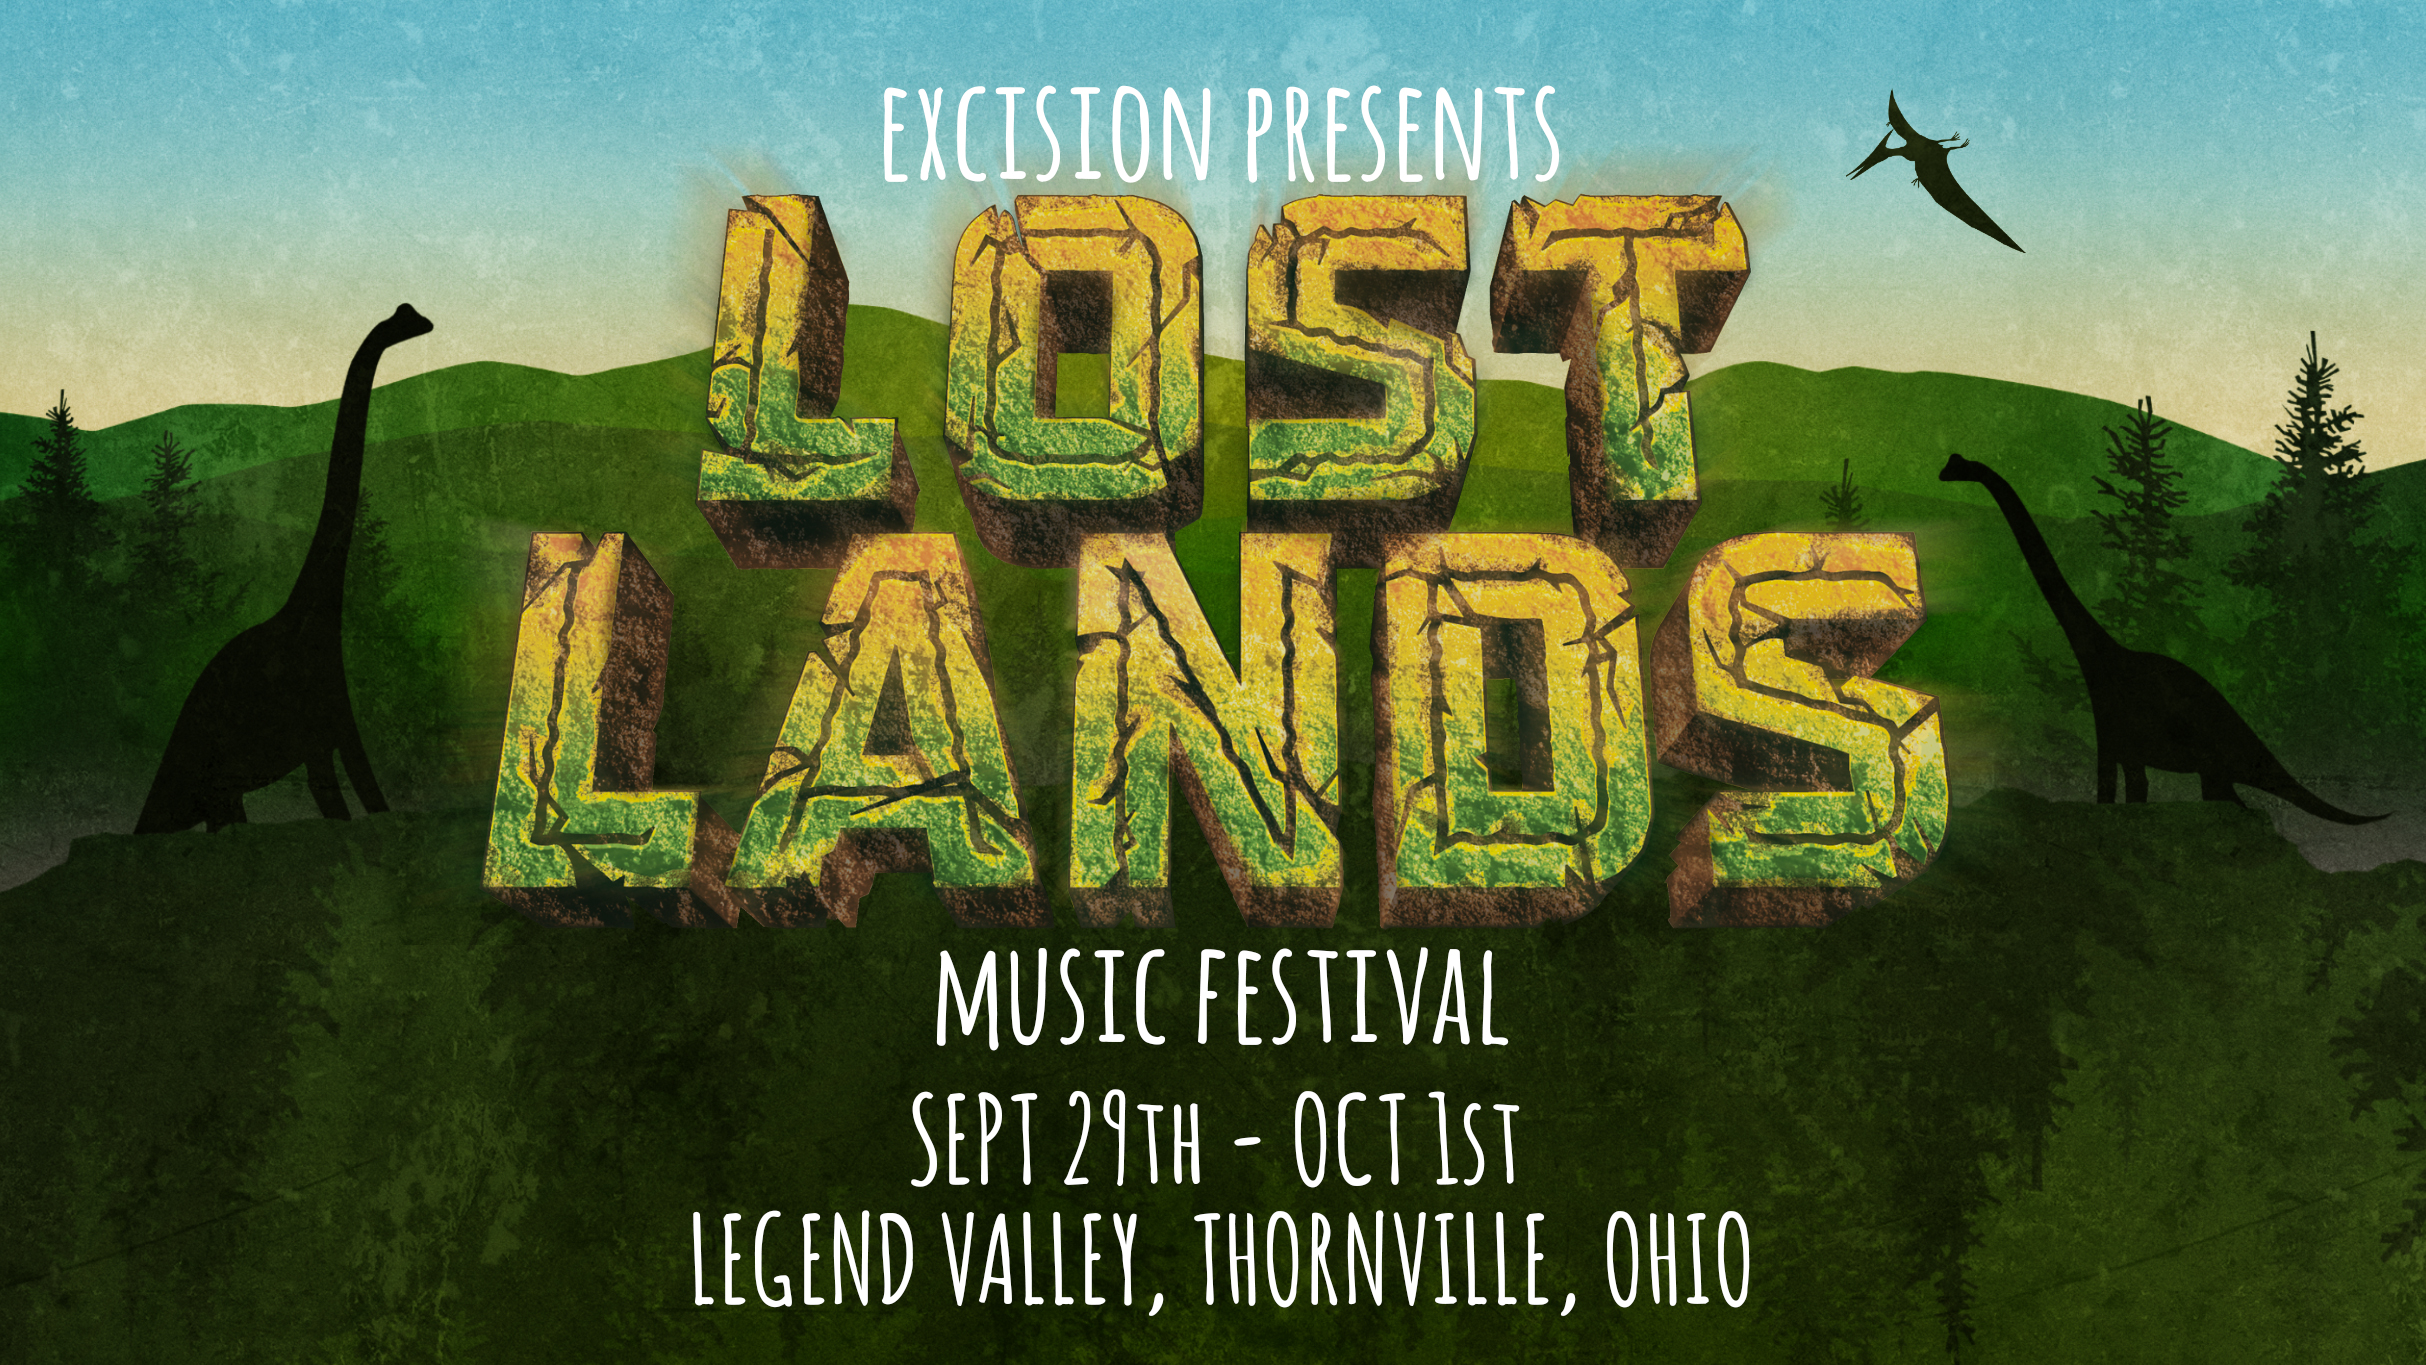 Are You Ready for the Loudest Music Festival Ever?